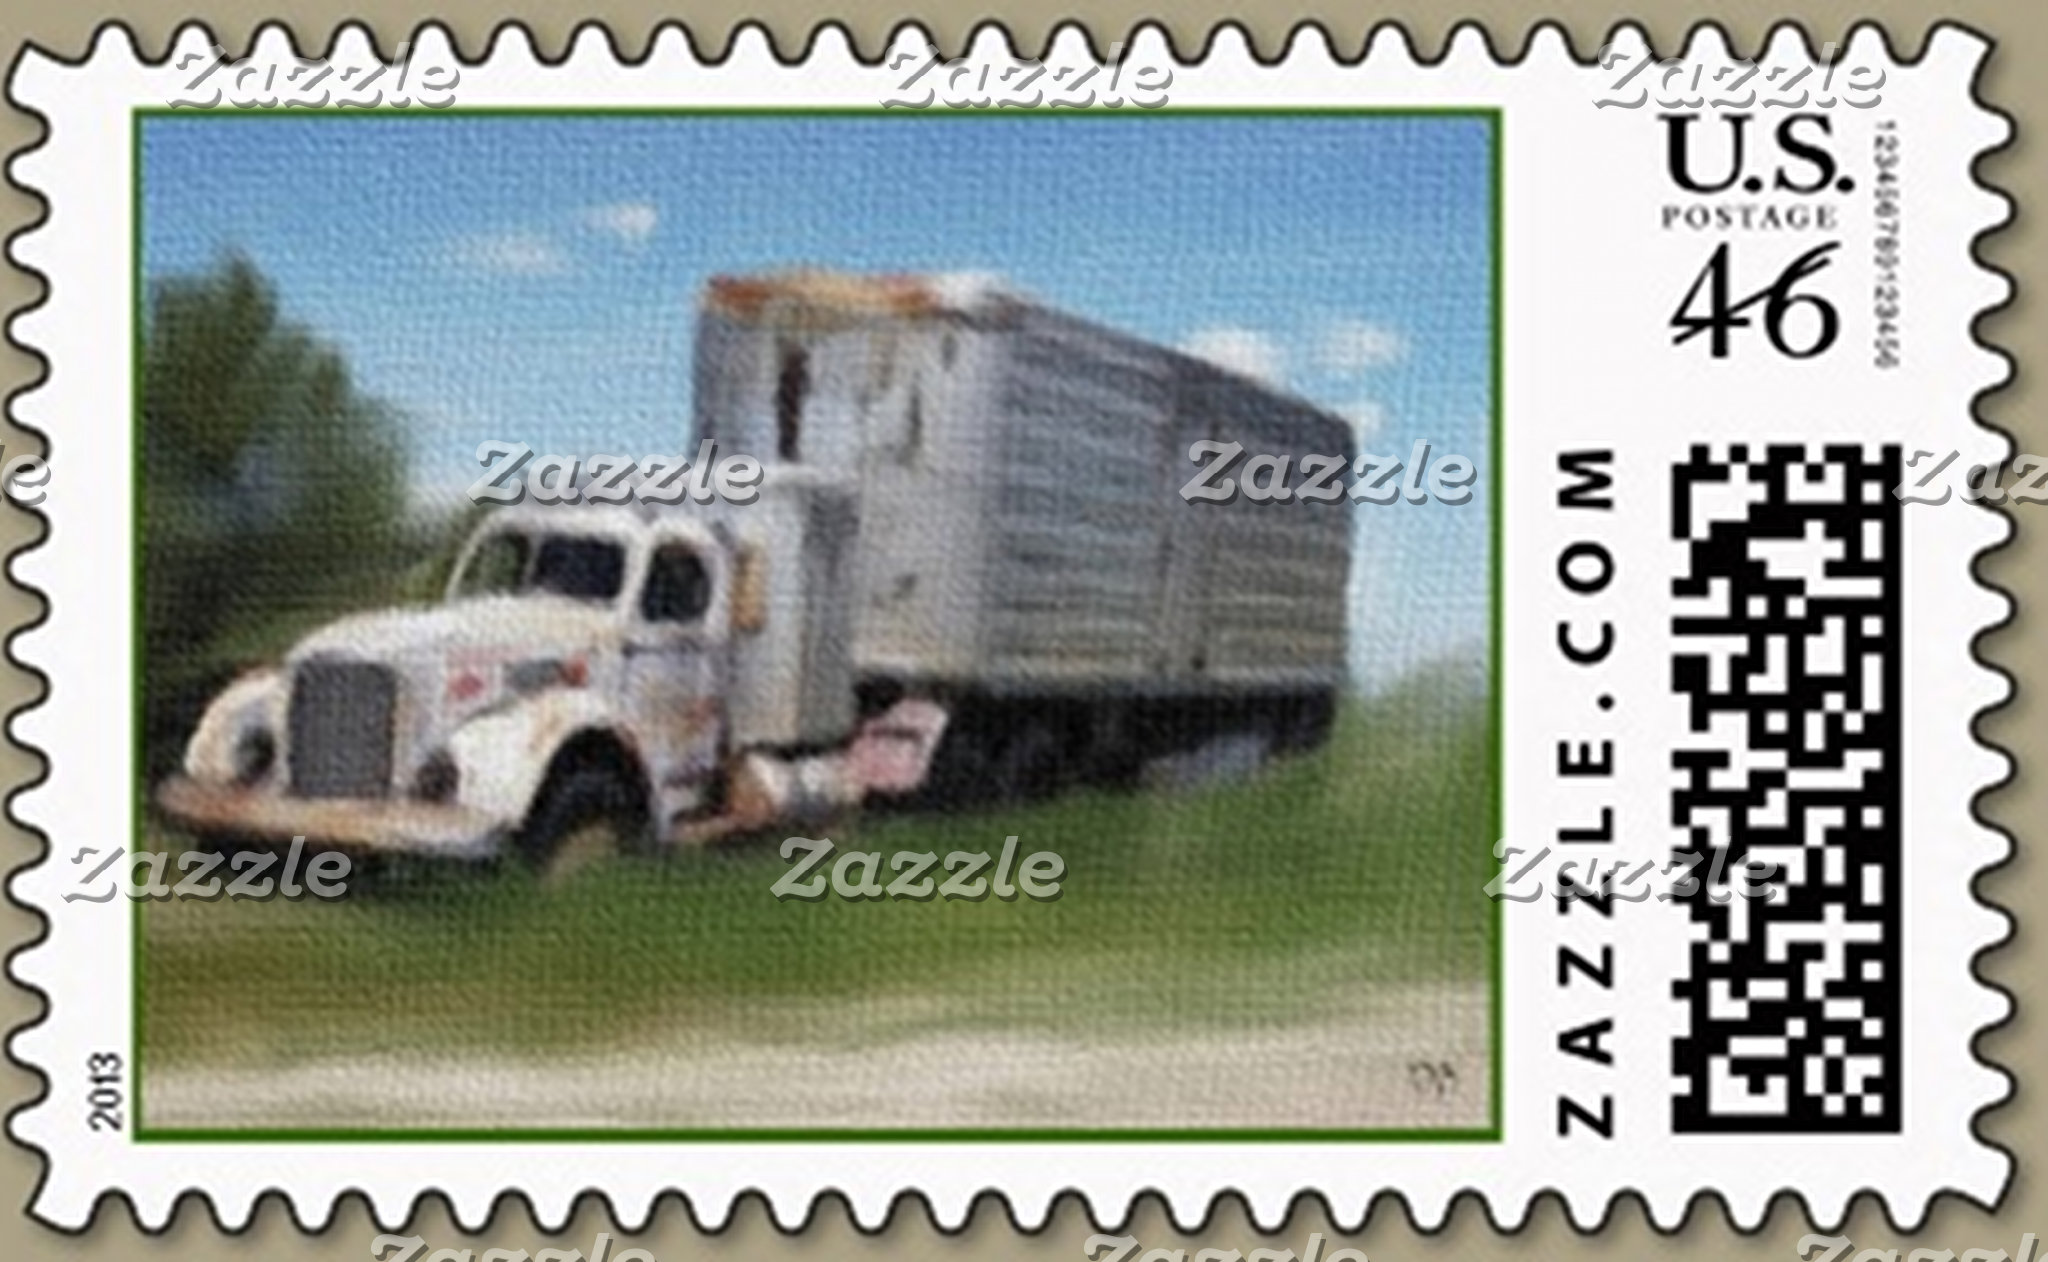 Vehicle Postage